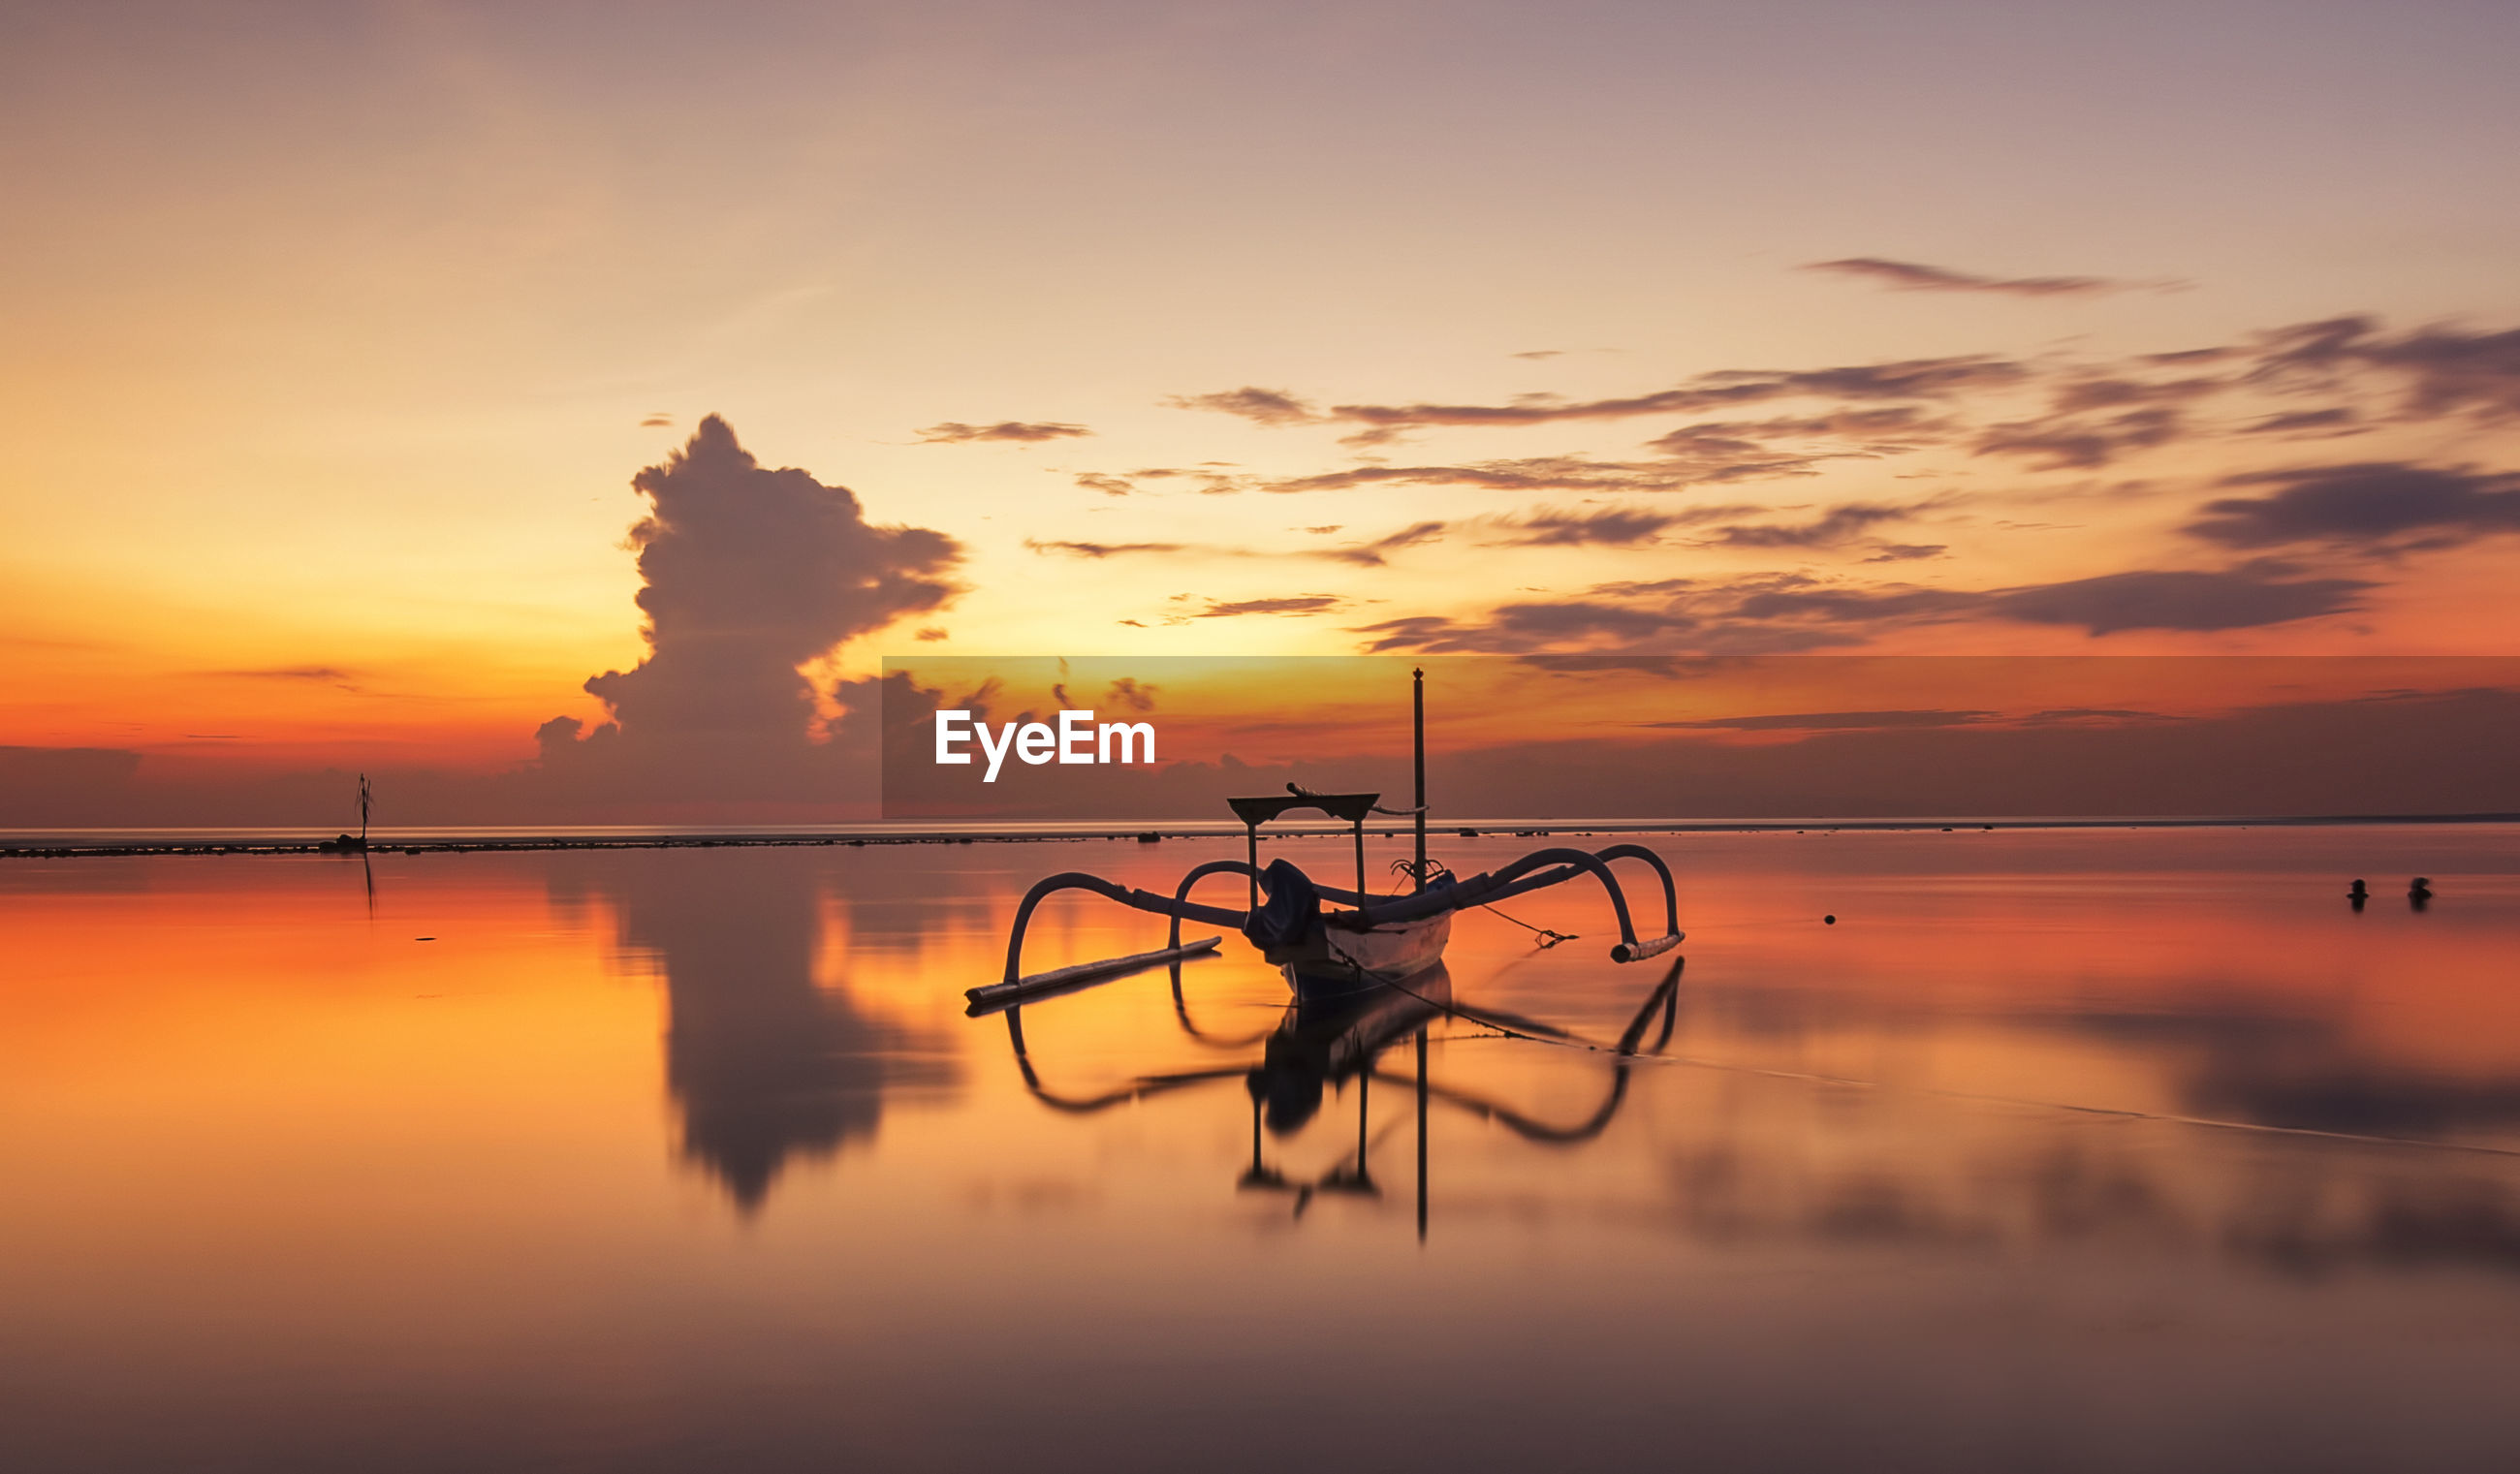 Jukung moored on shore against sky during sunrise